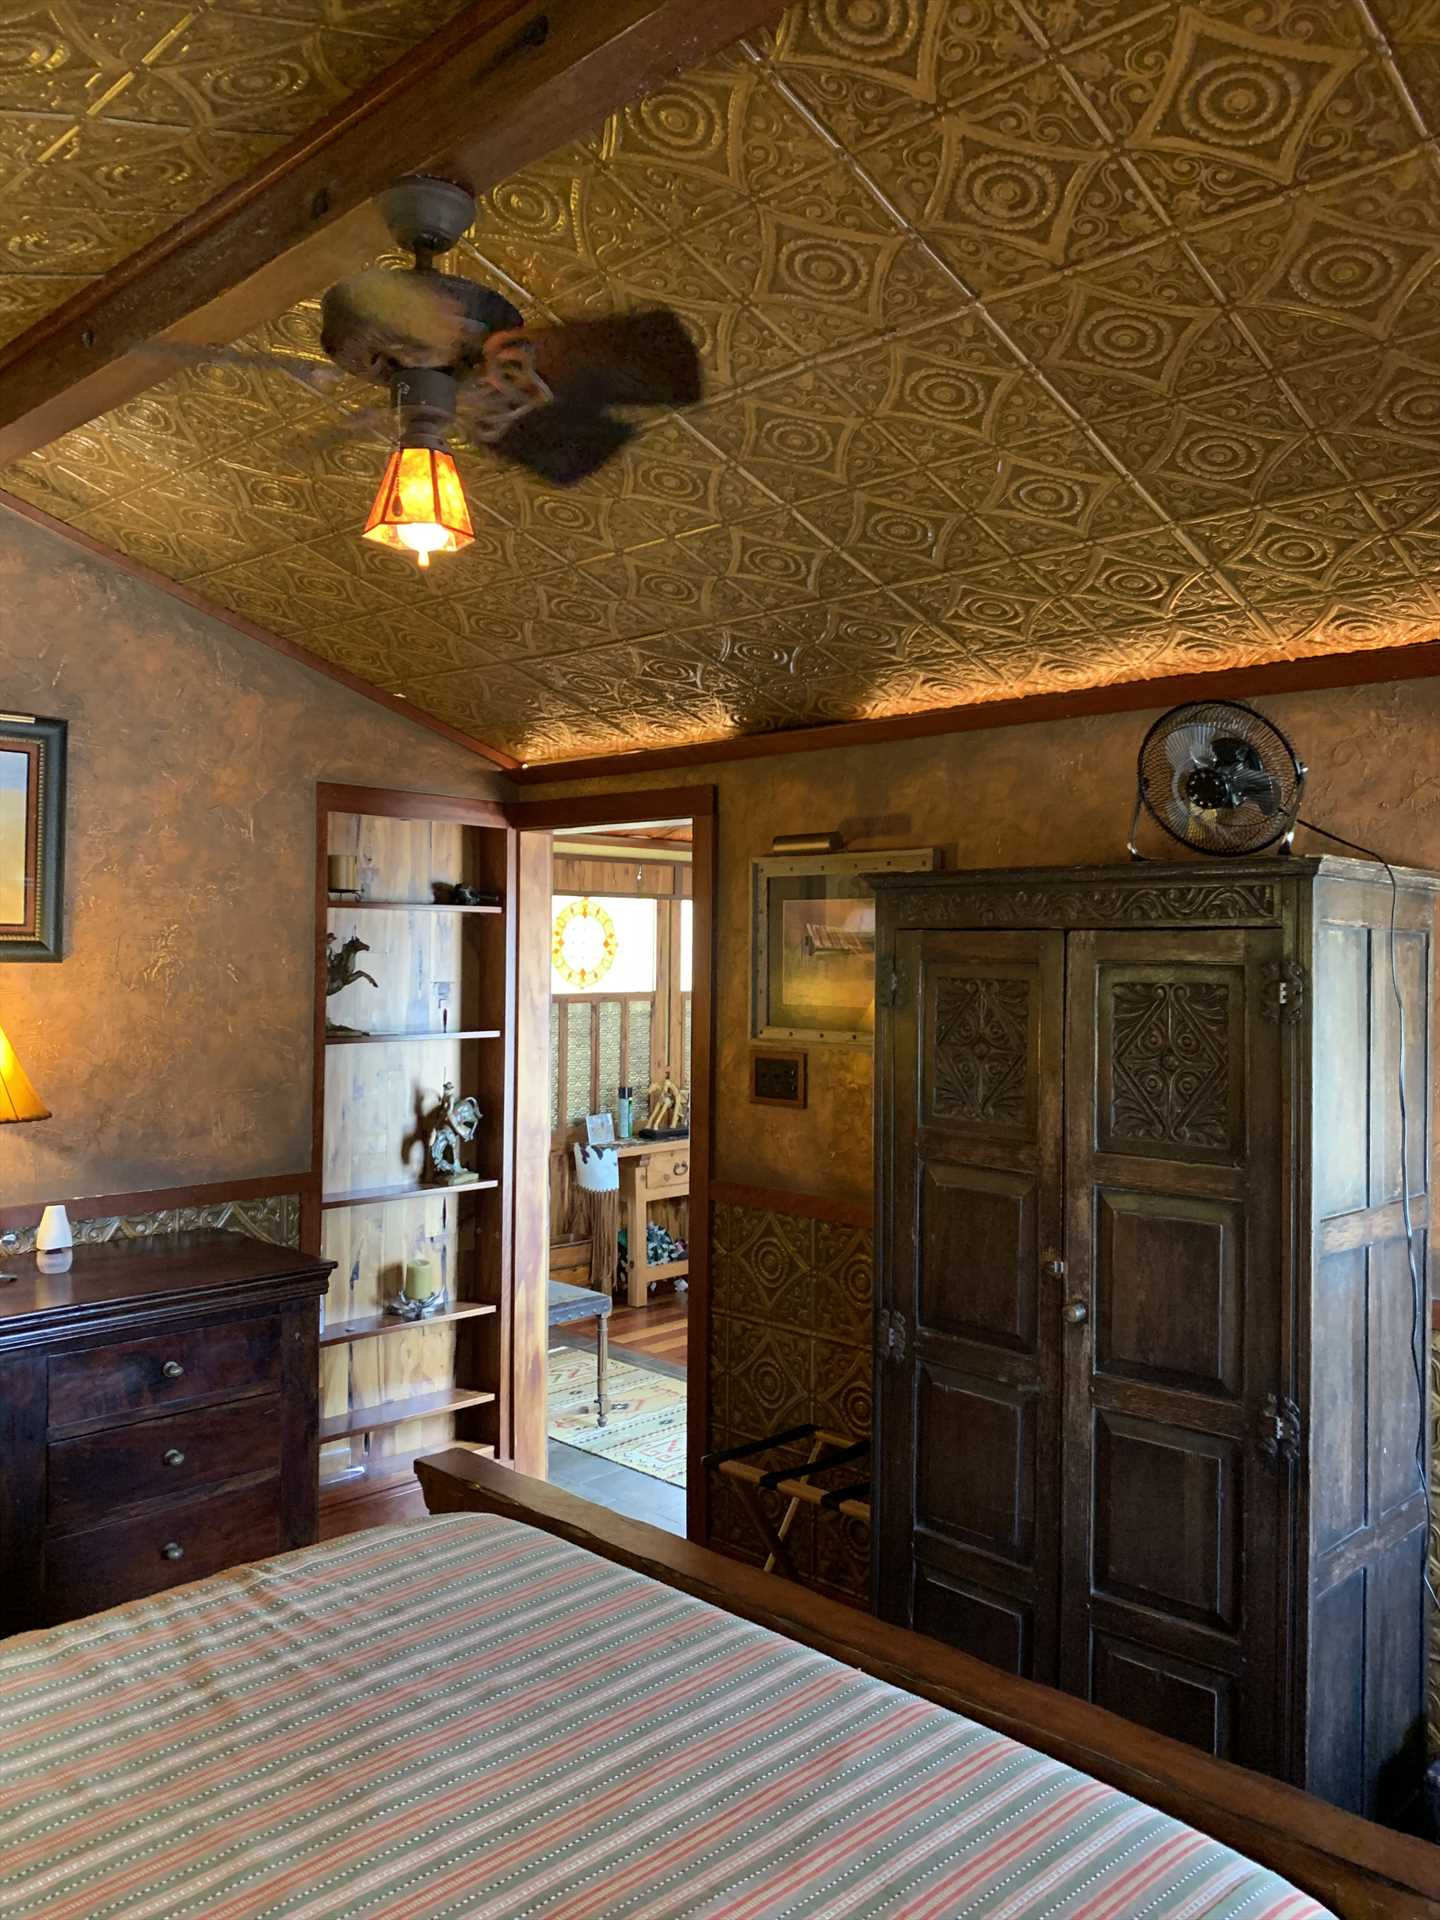 The delightful vintage decor continues in the bedroom, which is accented by charming tin panels and a beamed ceiling!